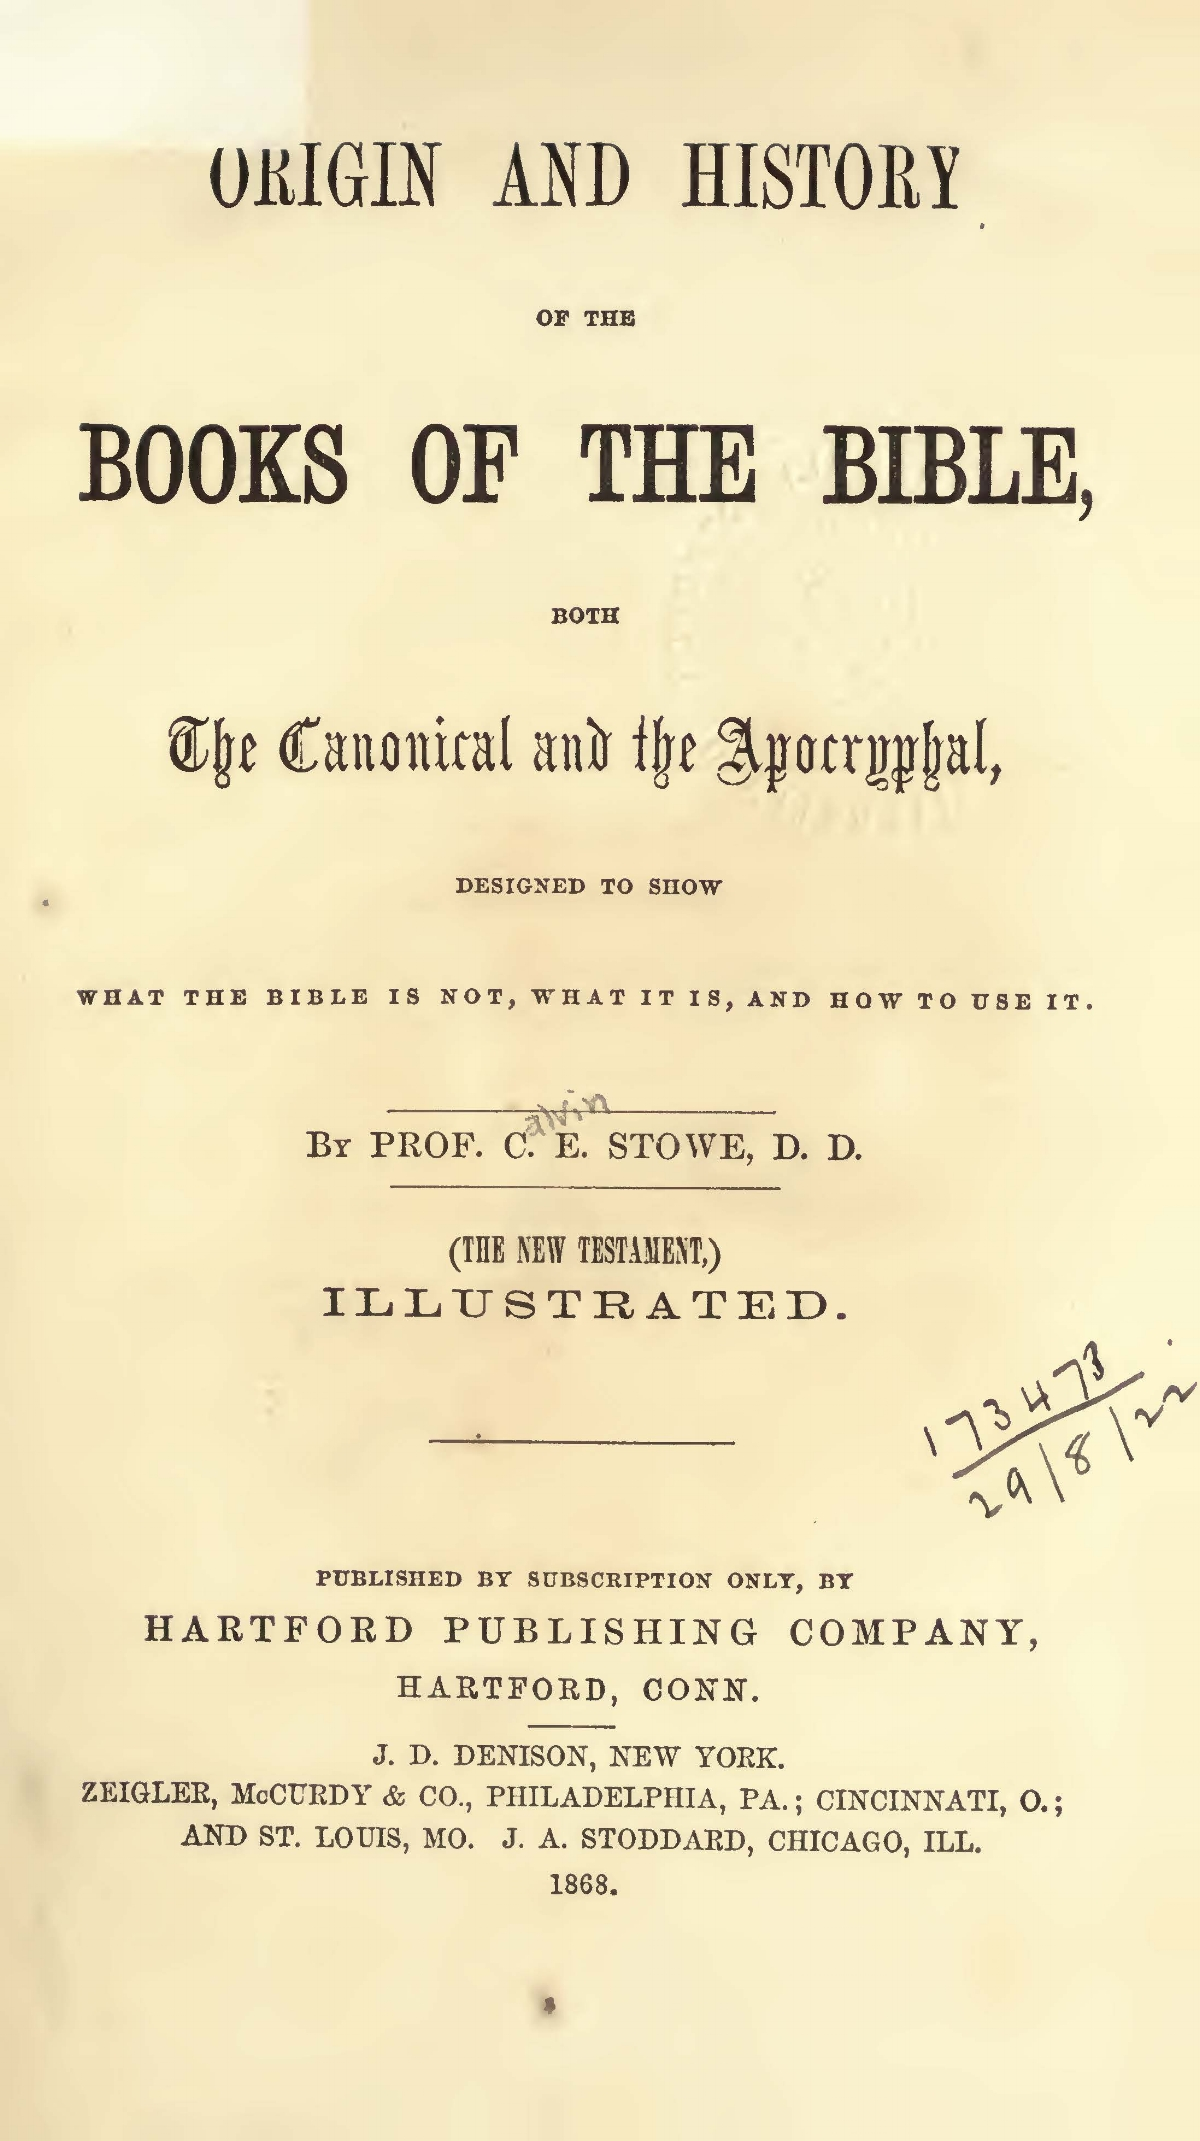 Stowe, Calvin Ellis, Origin and History of the Books of the Bible Title Page.jpg